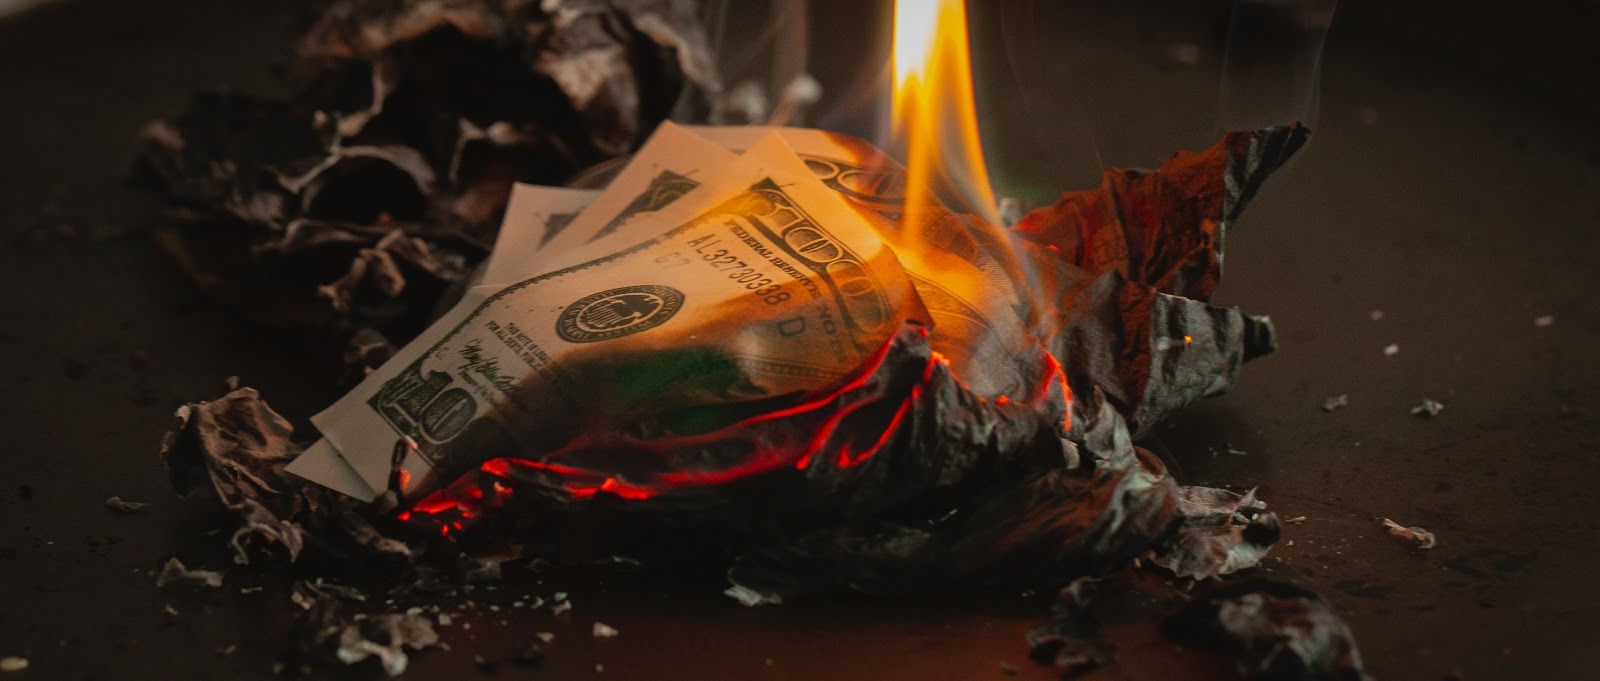 100 US dollar bills burning into ashes